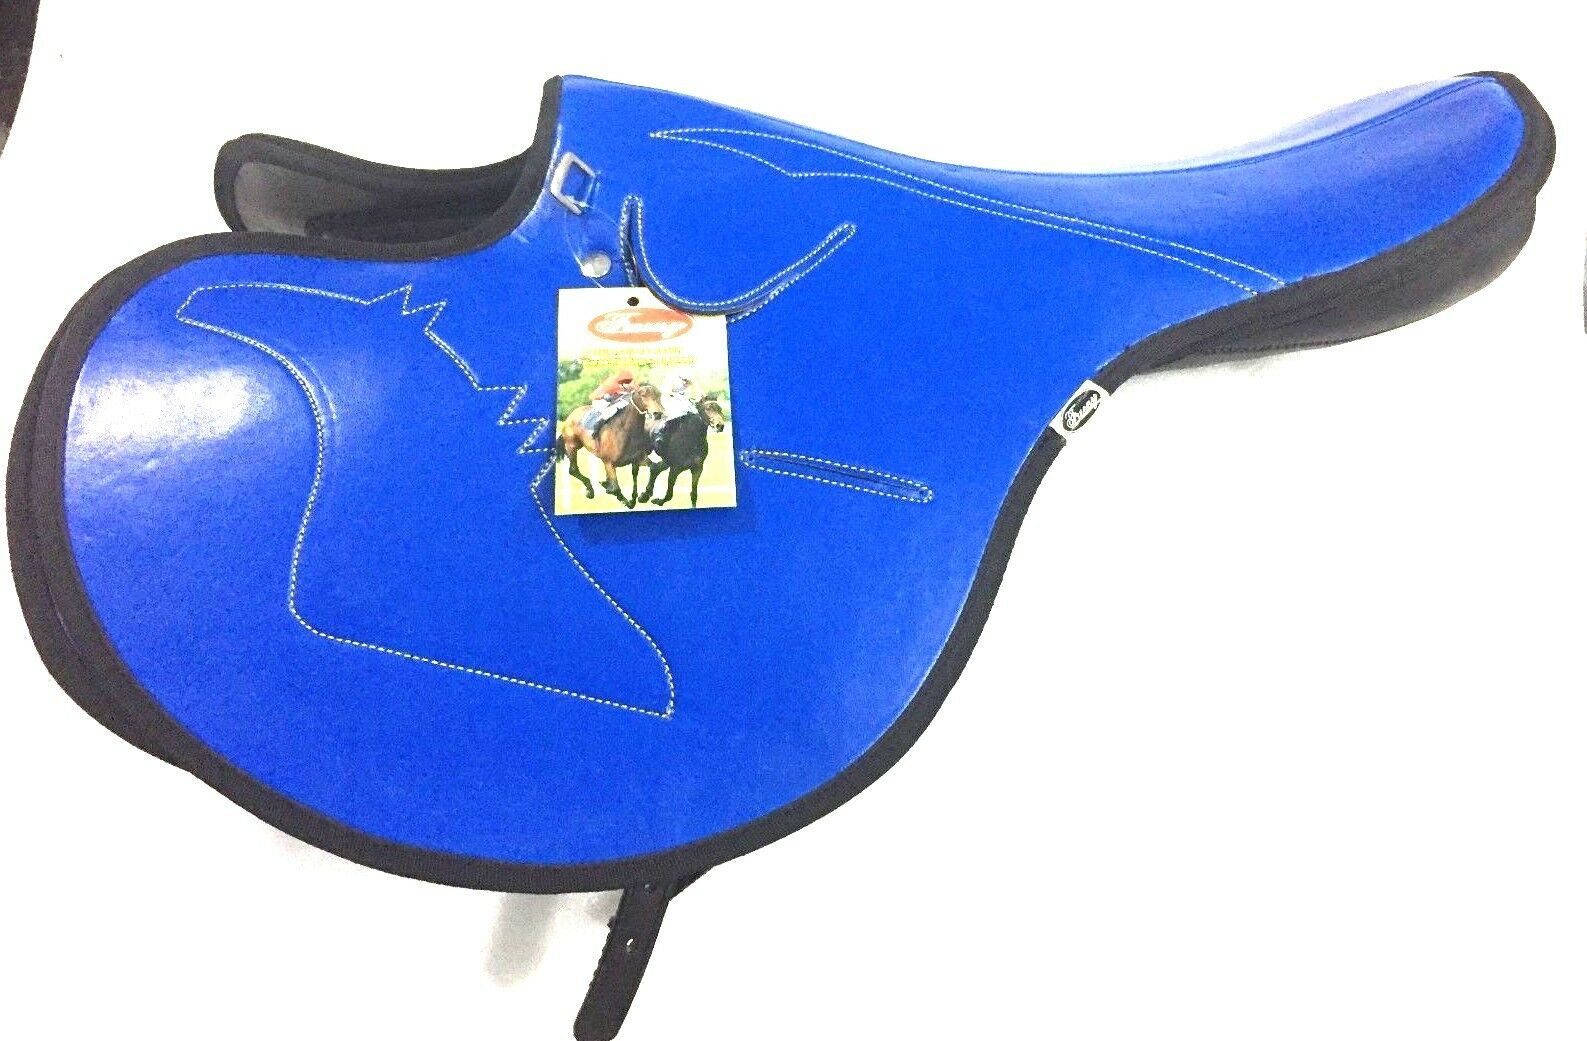 New Design Freeny Brand Synthetic Race  Exercise Saddle bluee color  best service